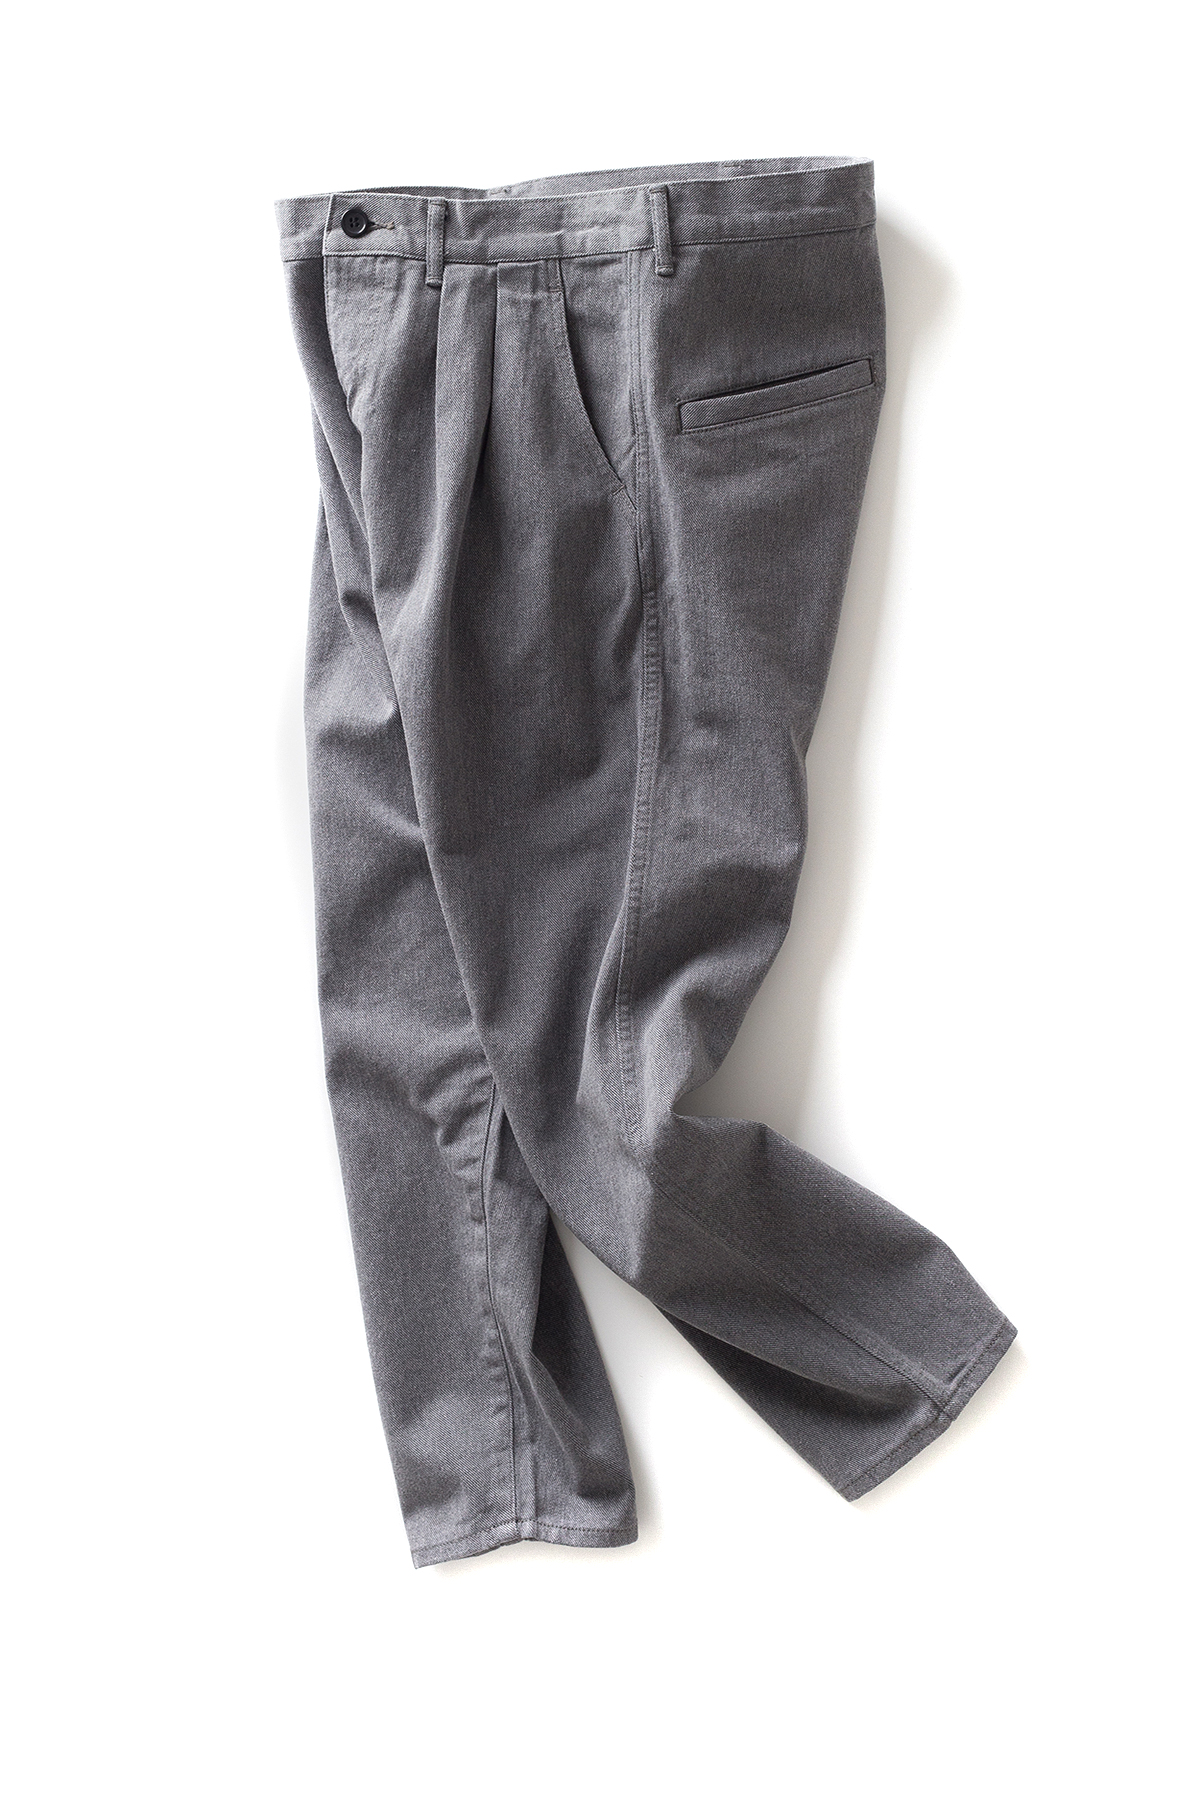 EEL : Tuckman Denim (Grey)